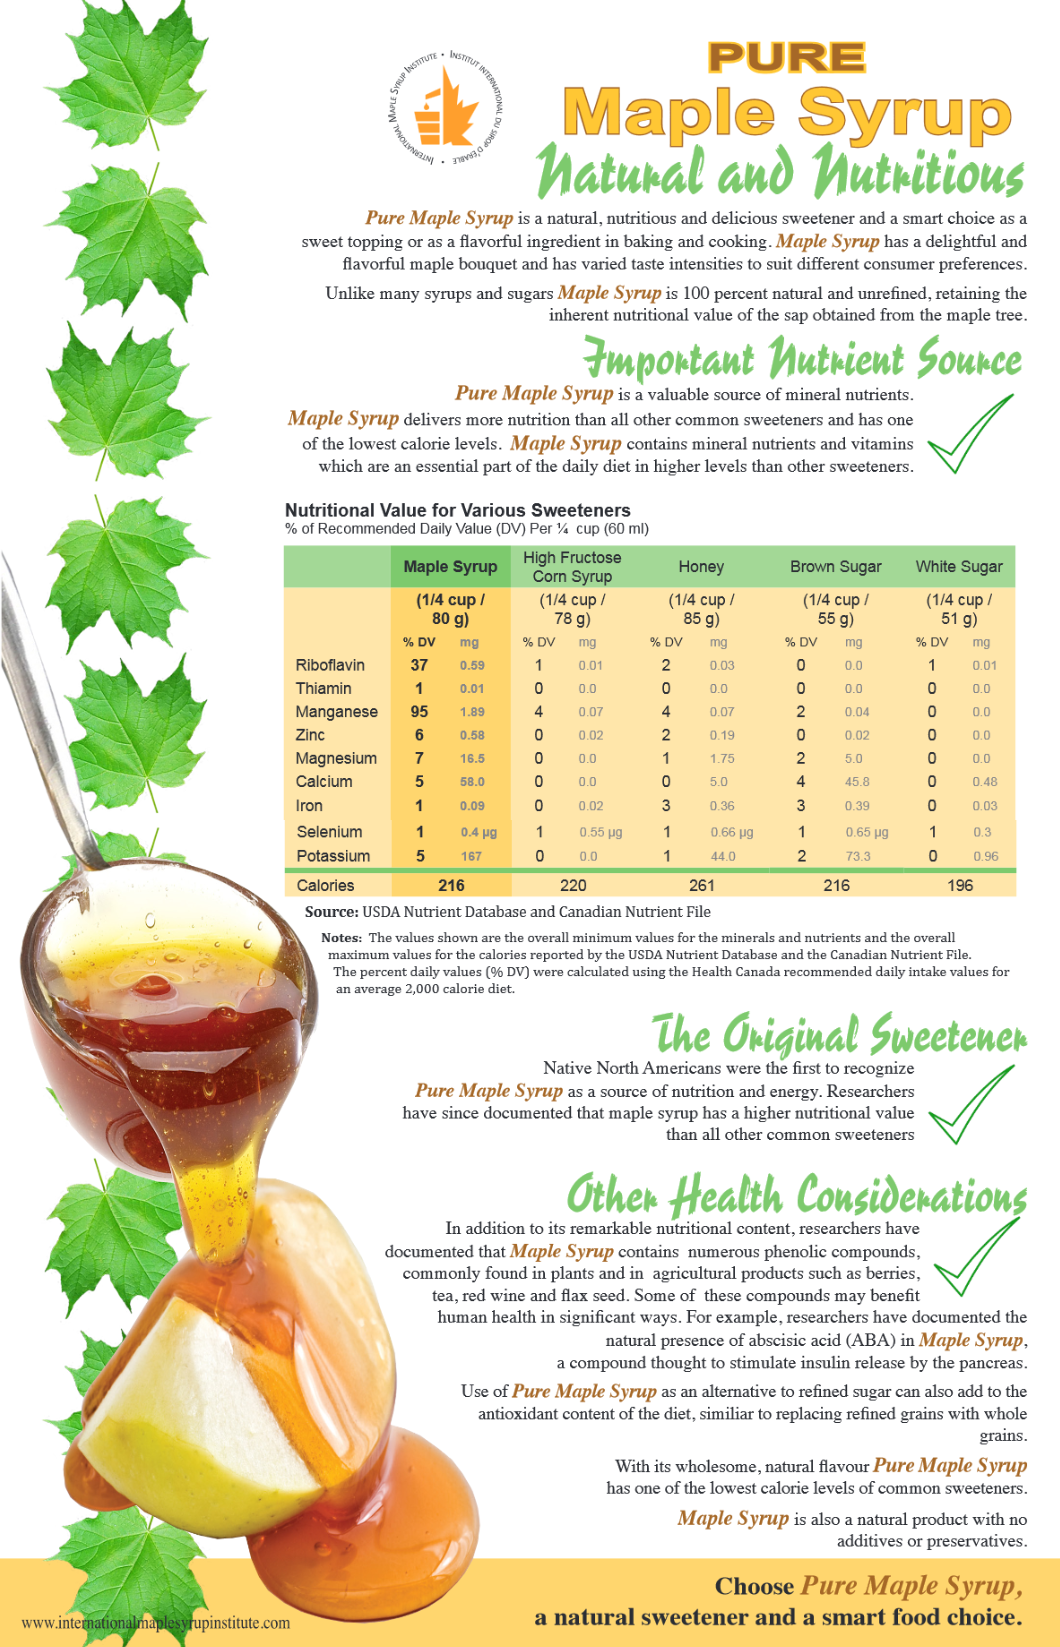 Nutritional information about maple syrup